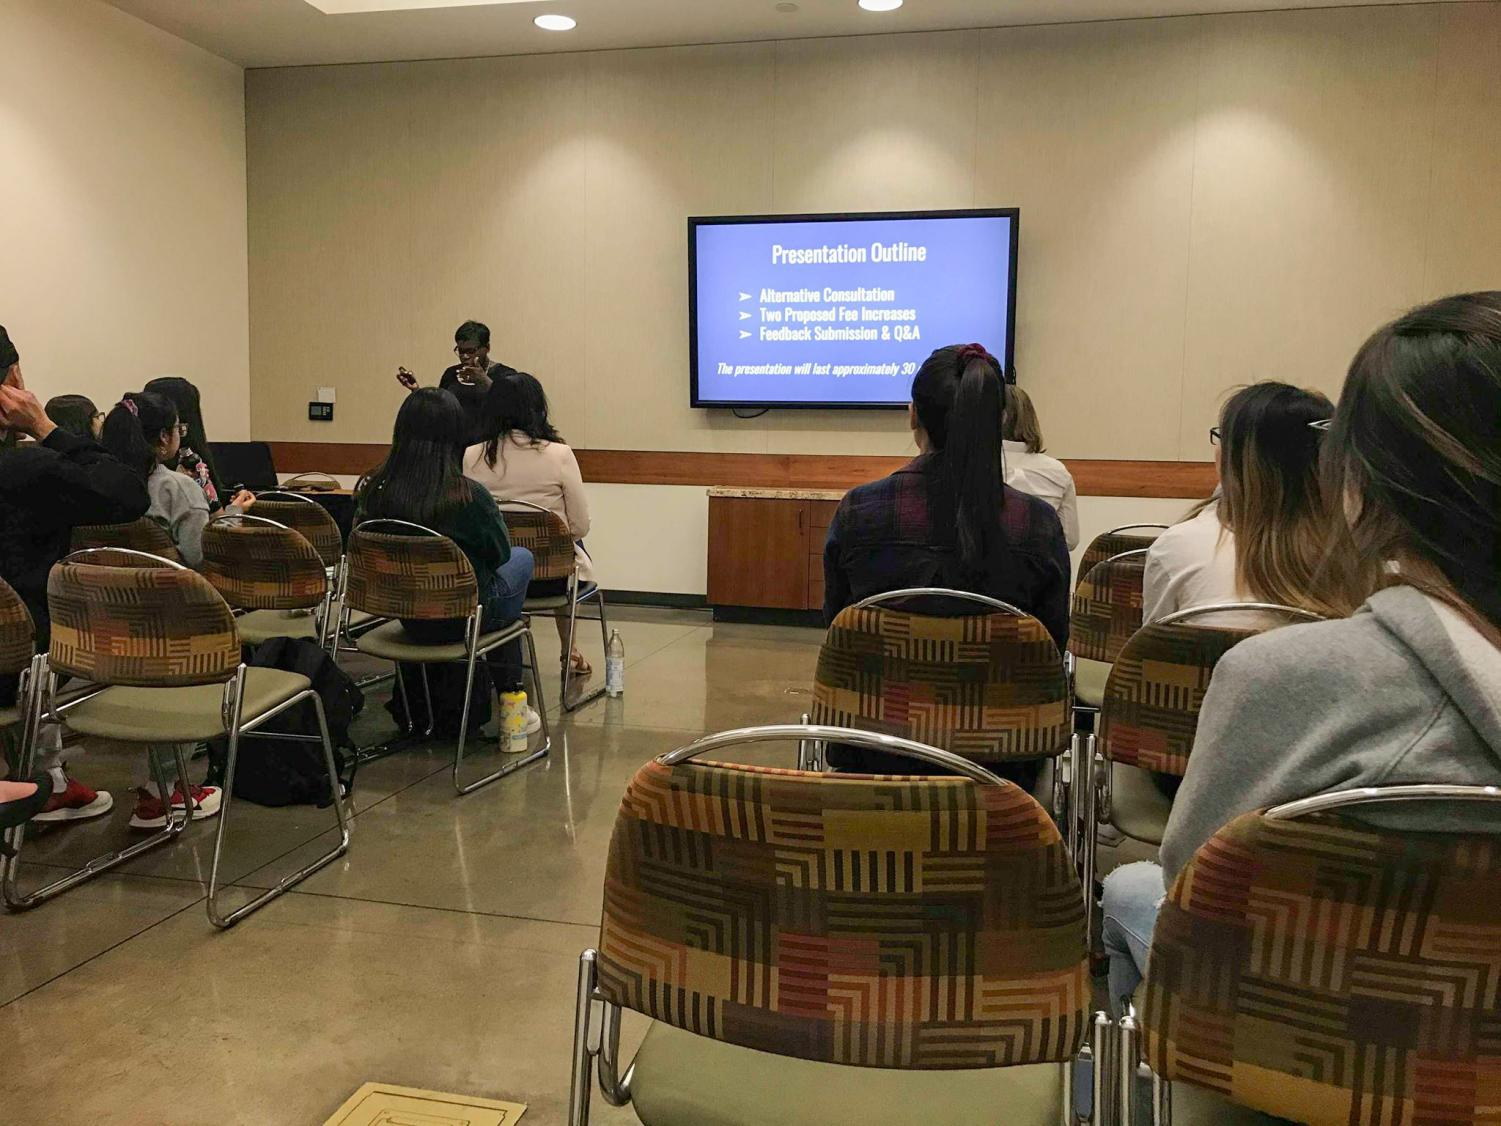 SDSU and student organizations are hosting forums to educate students on the two proposed fee increases. If approved, the additional fees will take effect fall 2020.